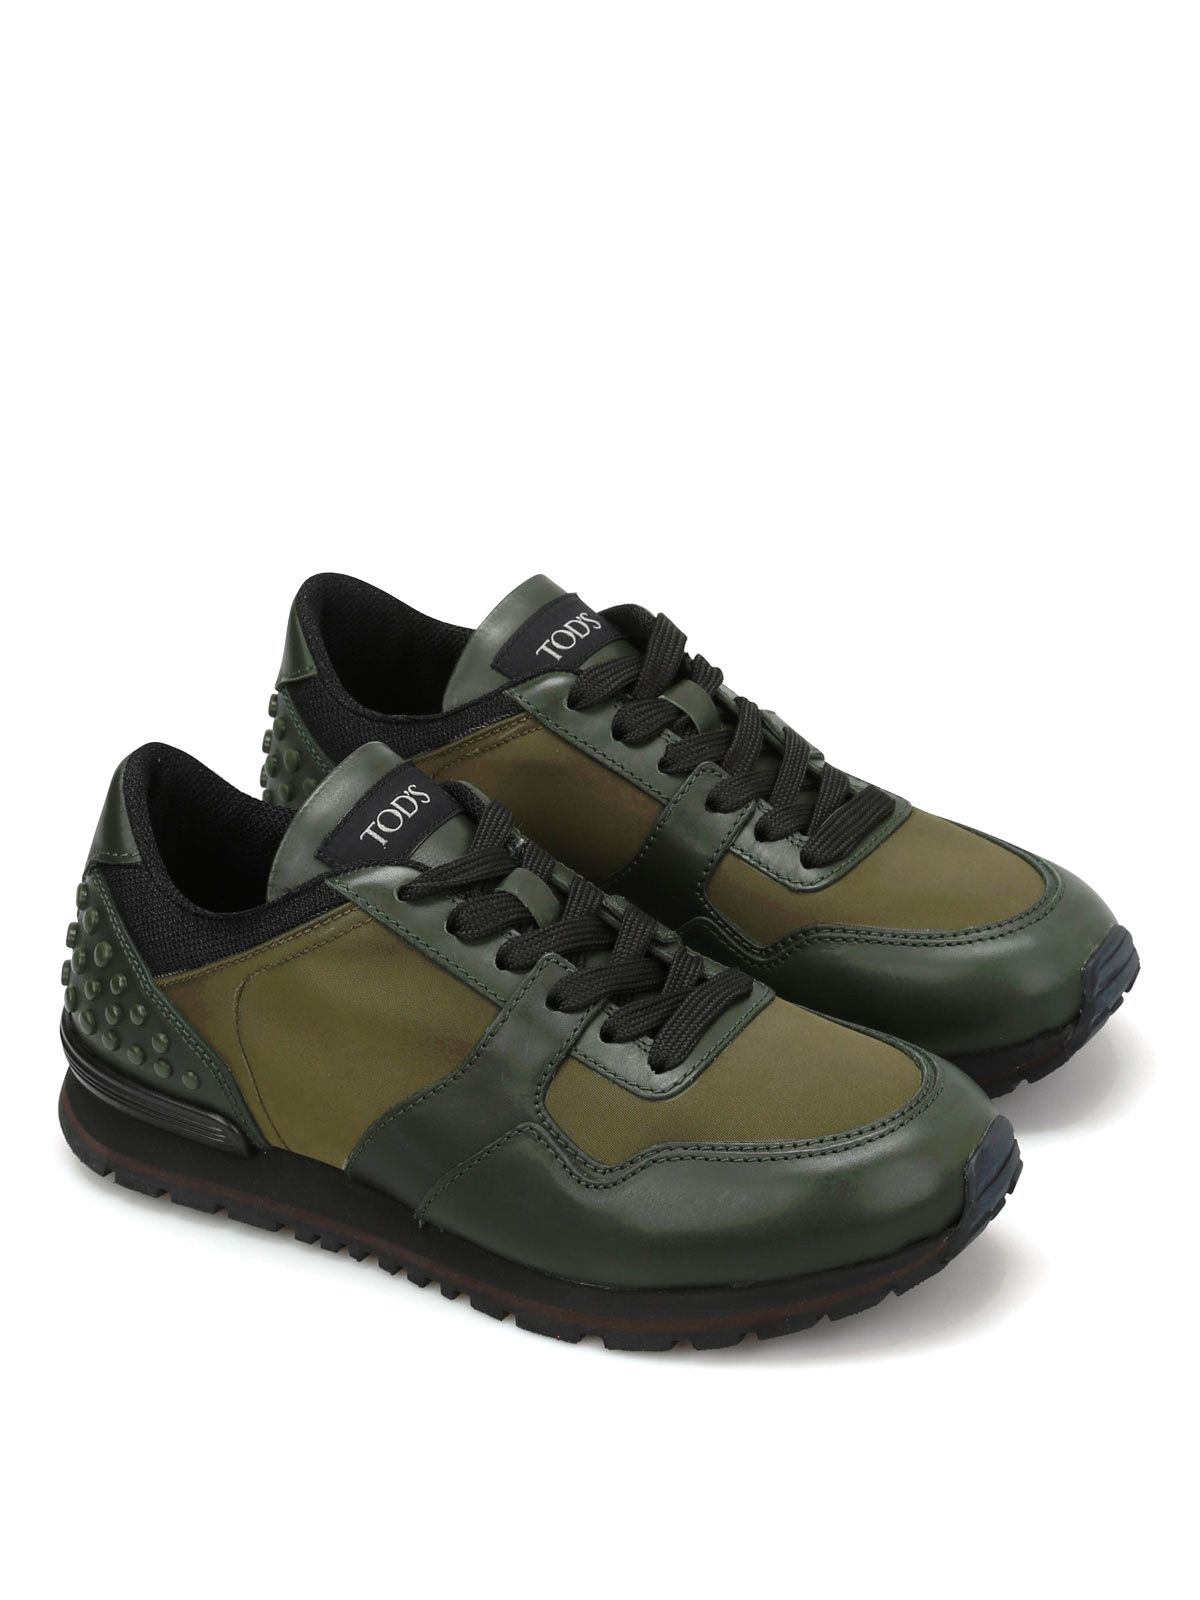 Tods Leather And Technical Fabric Shoes